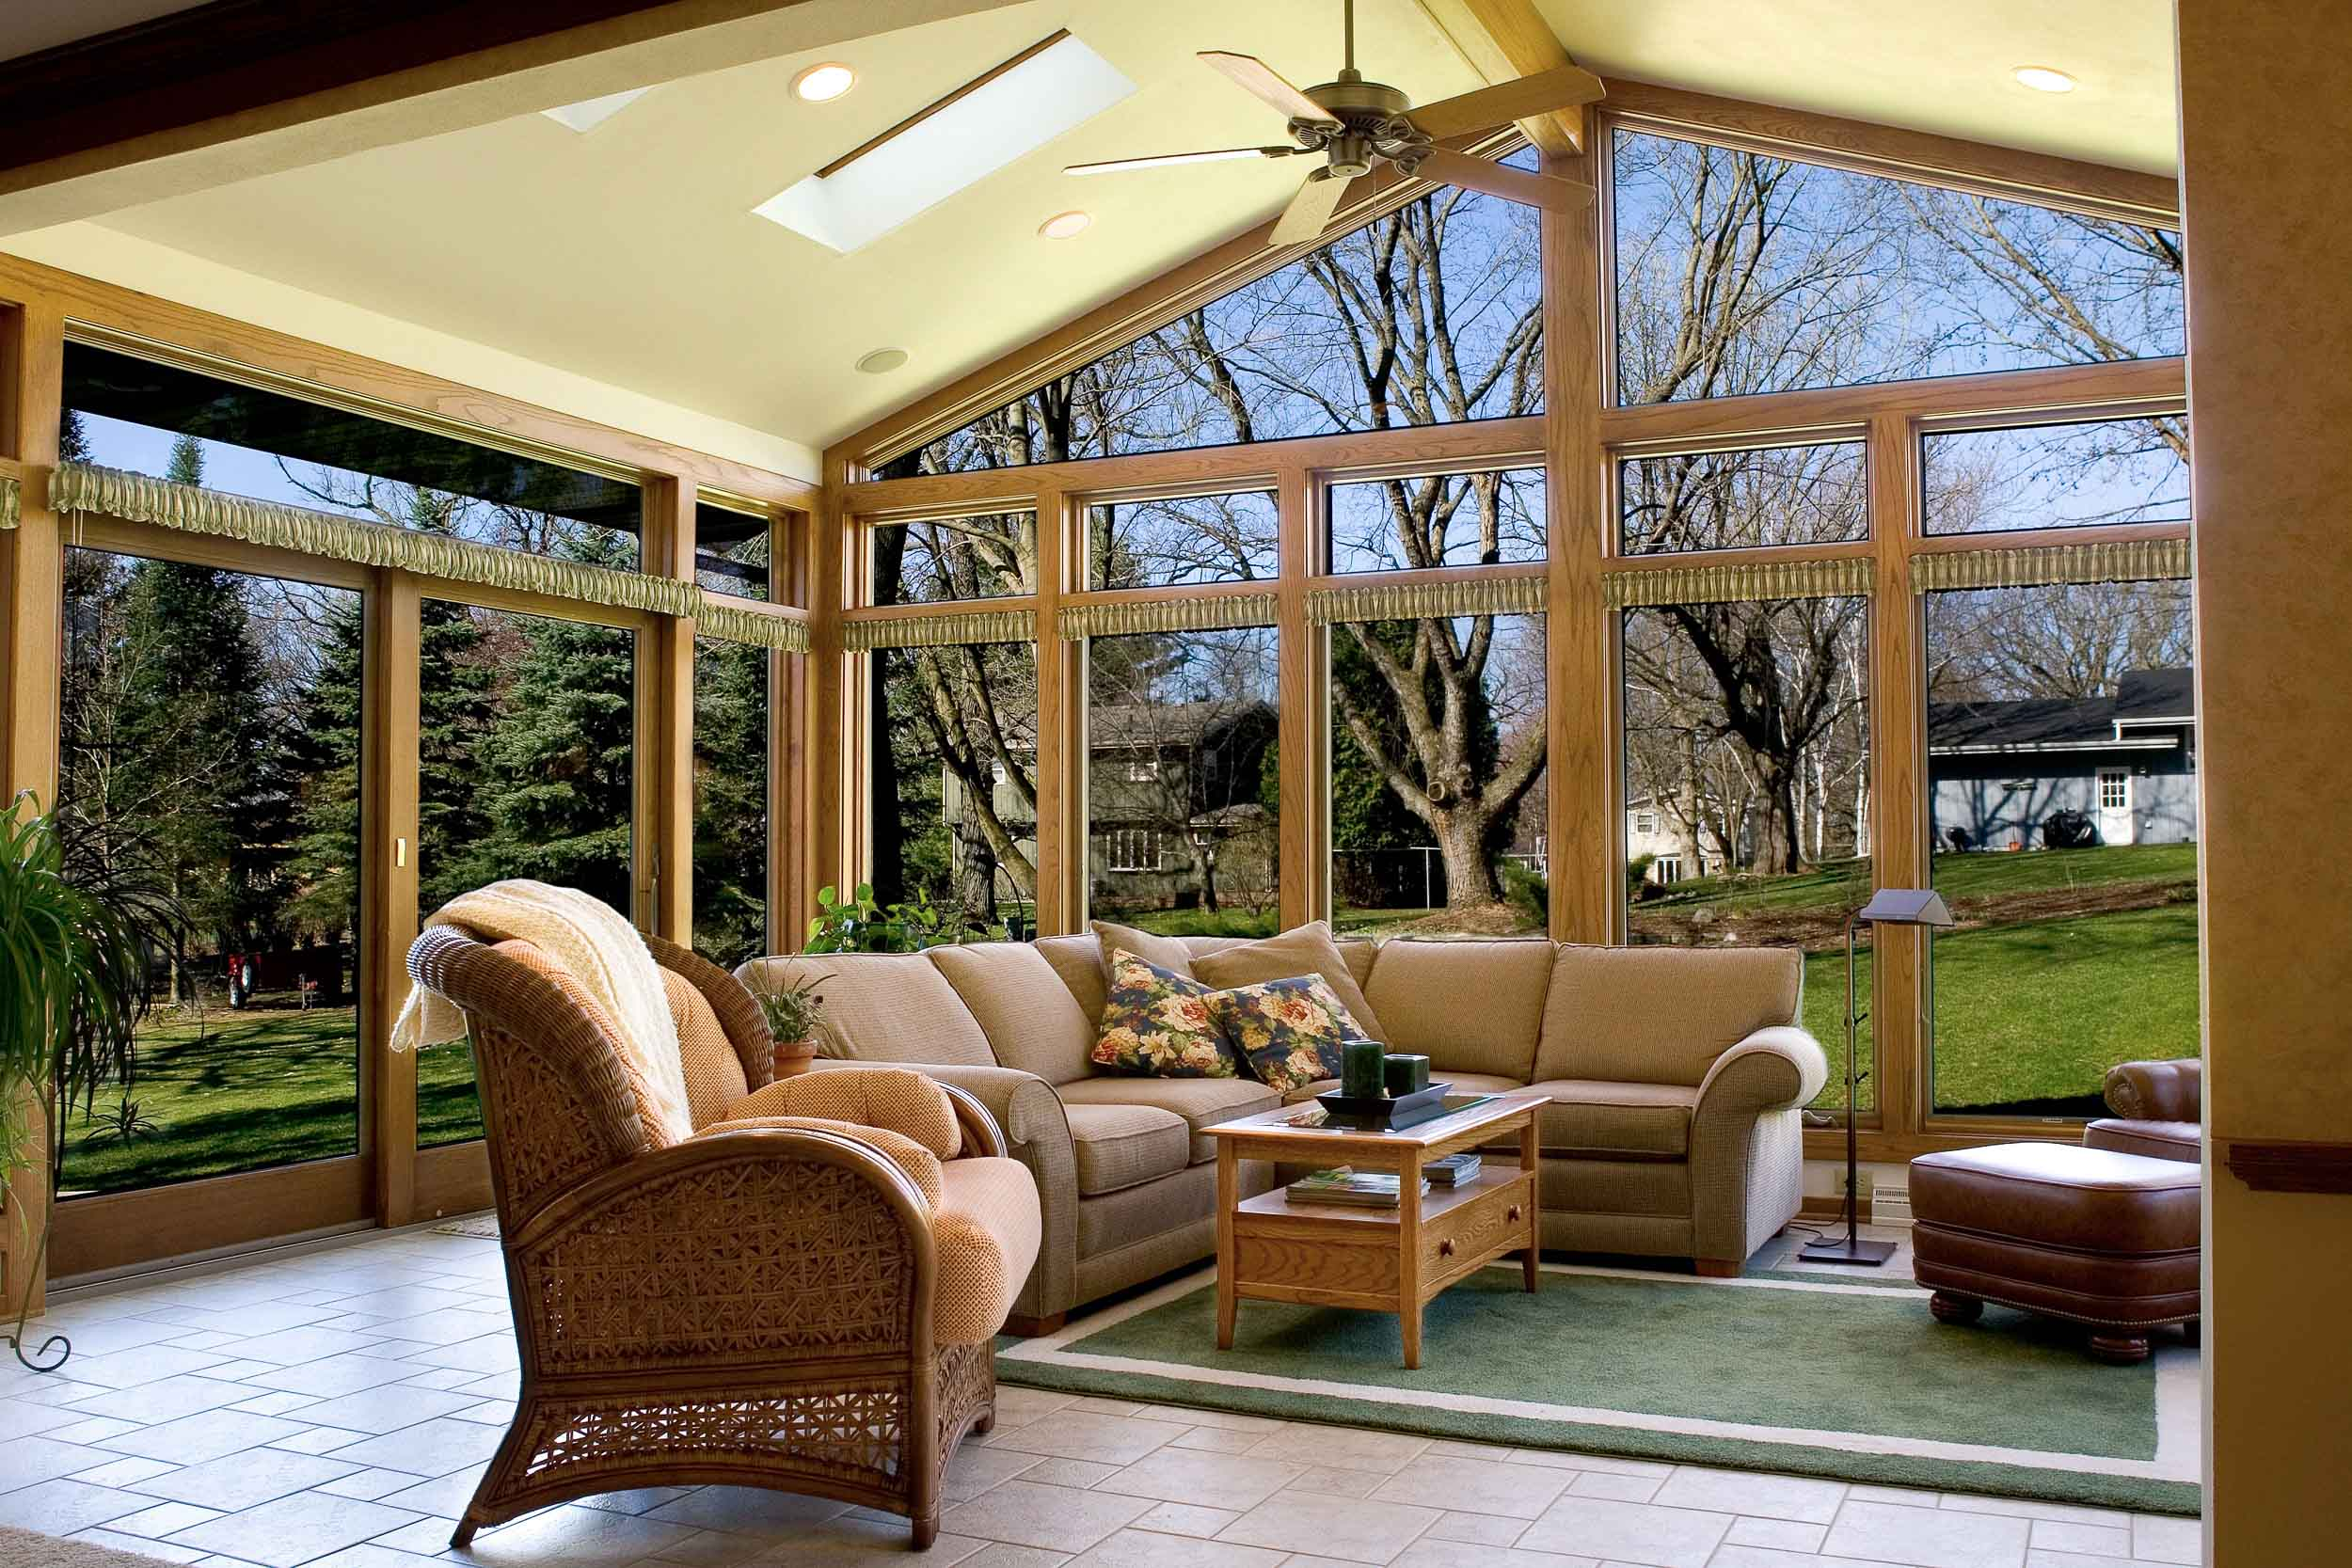 - This 4-season, heated & cooled sunroom, started as the back screened porch on a home. The old porch was removed, and totally re-built on top of the original foundation.